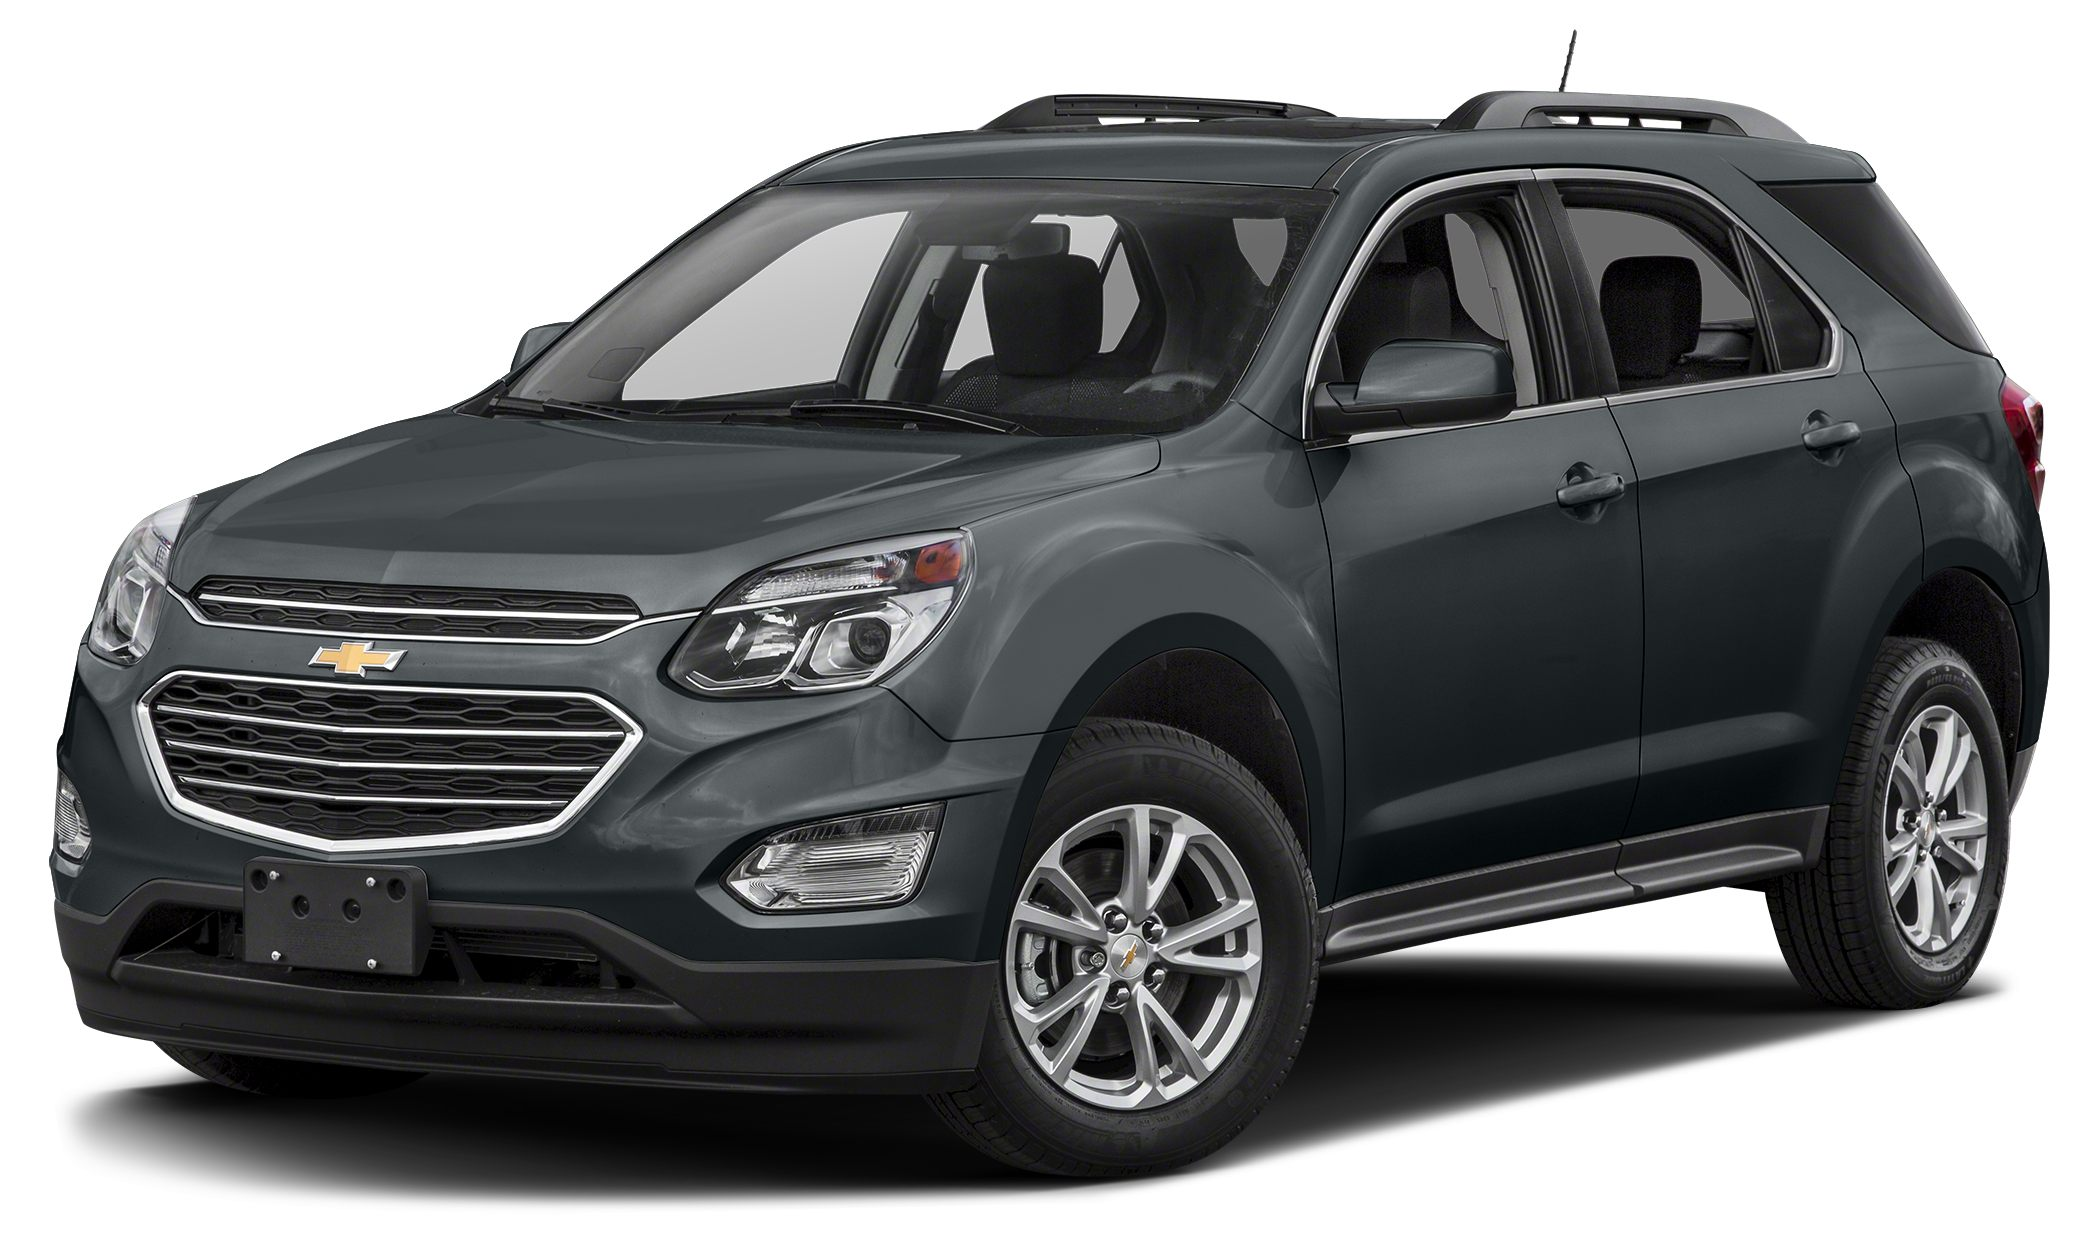 2017 Chevrolet Equinox LT Miles 0Color Nightfall Gray Metallic Stock 512851 VIN 2GNALCEK1H15